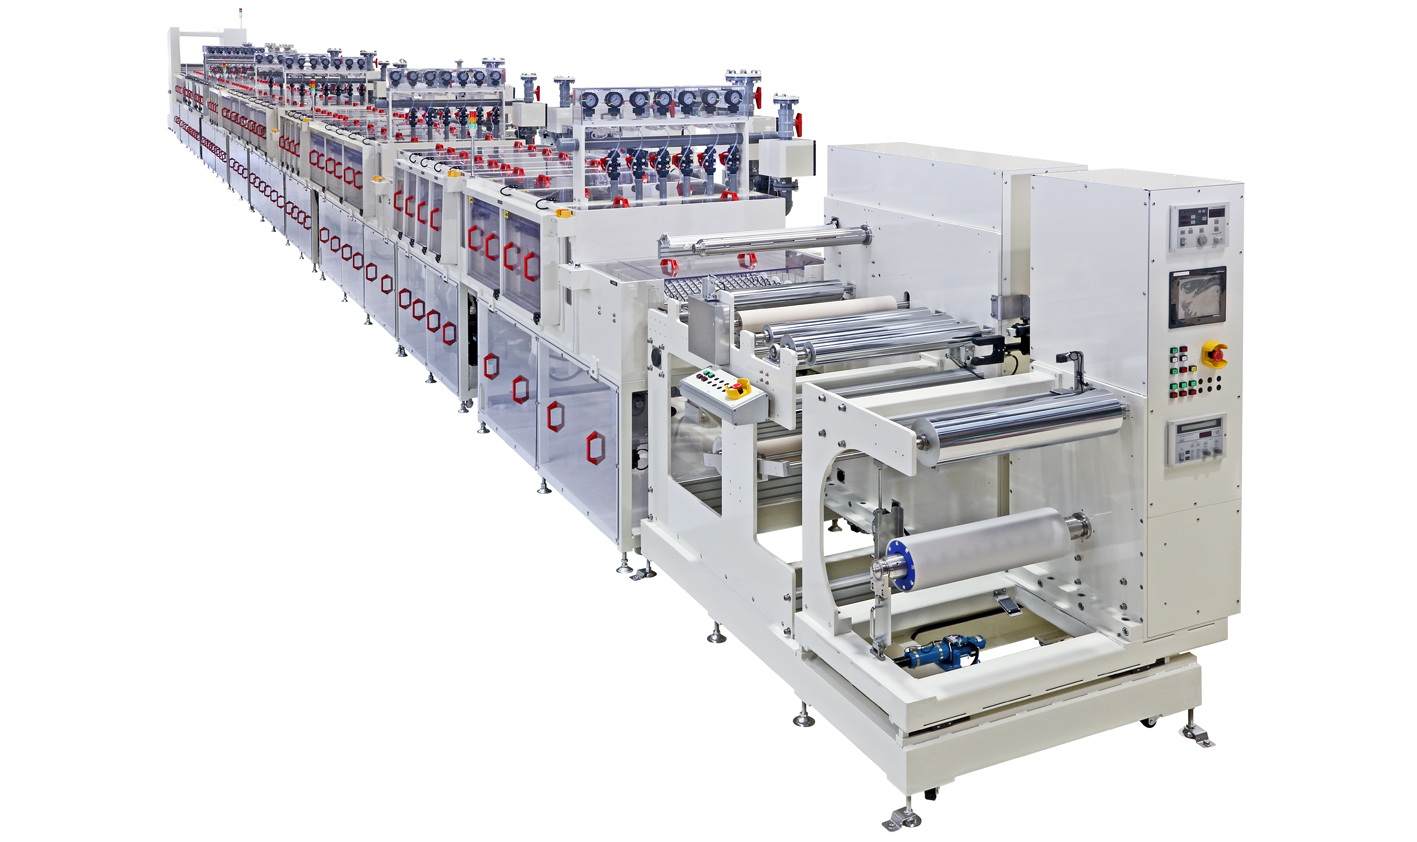 Touch panel manufacturing equipment